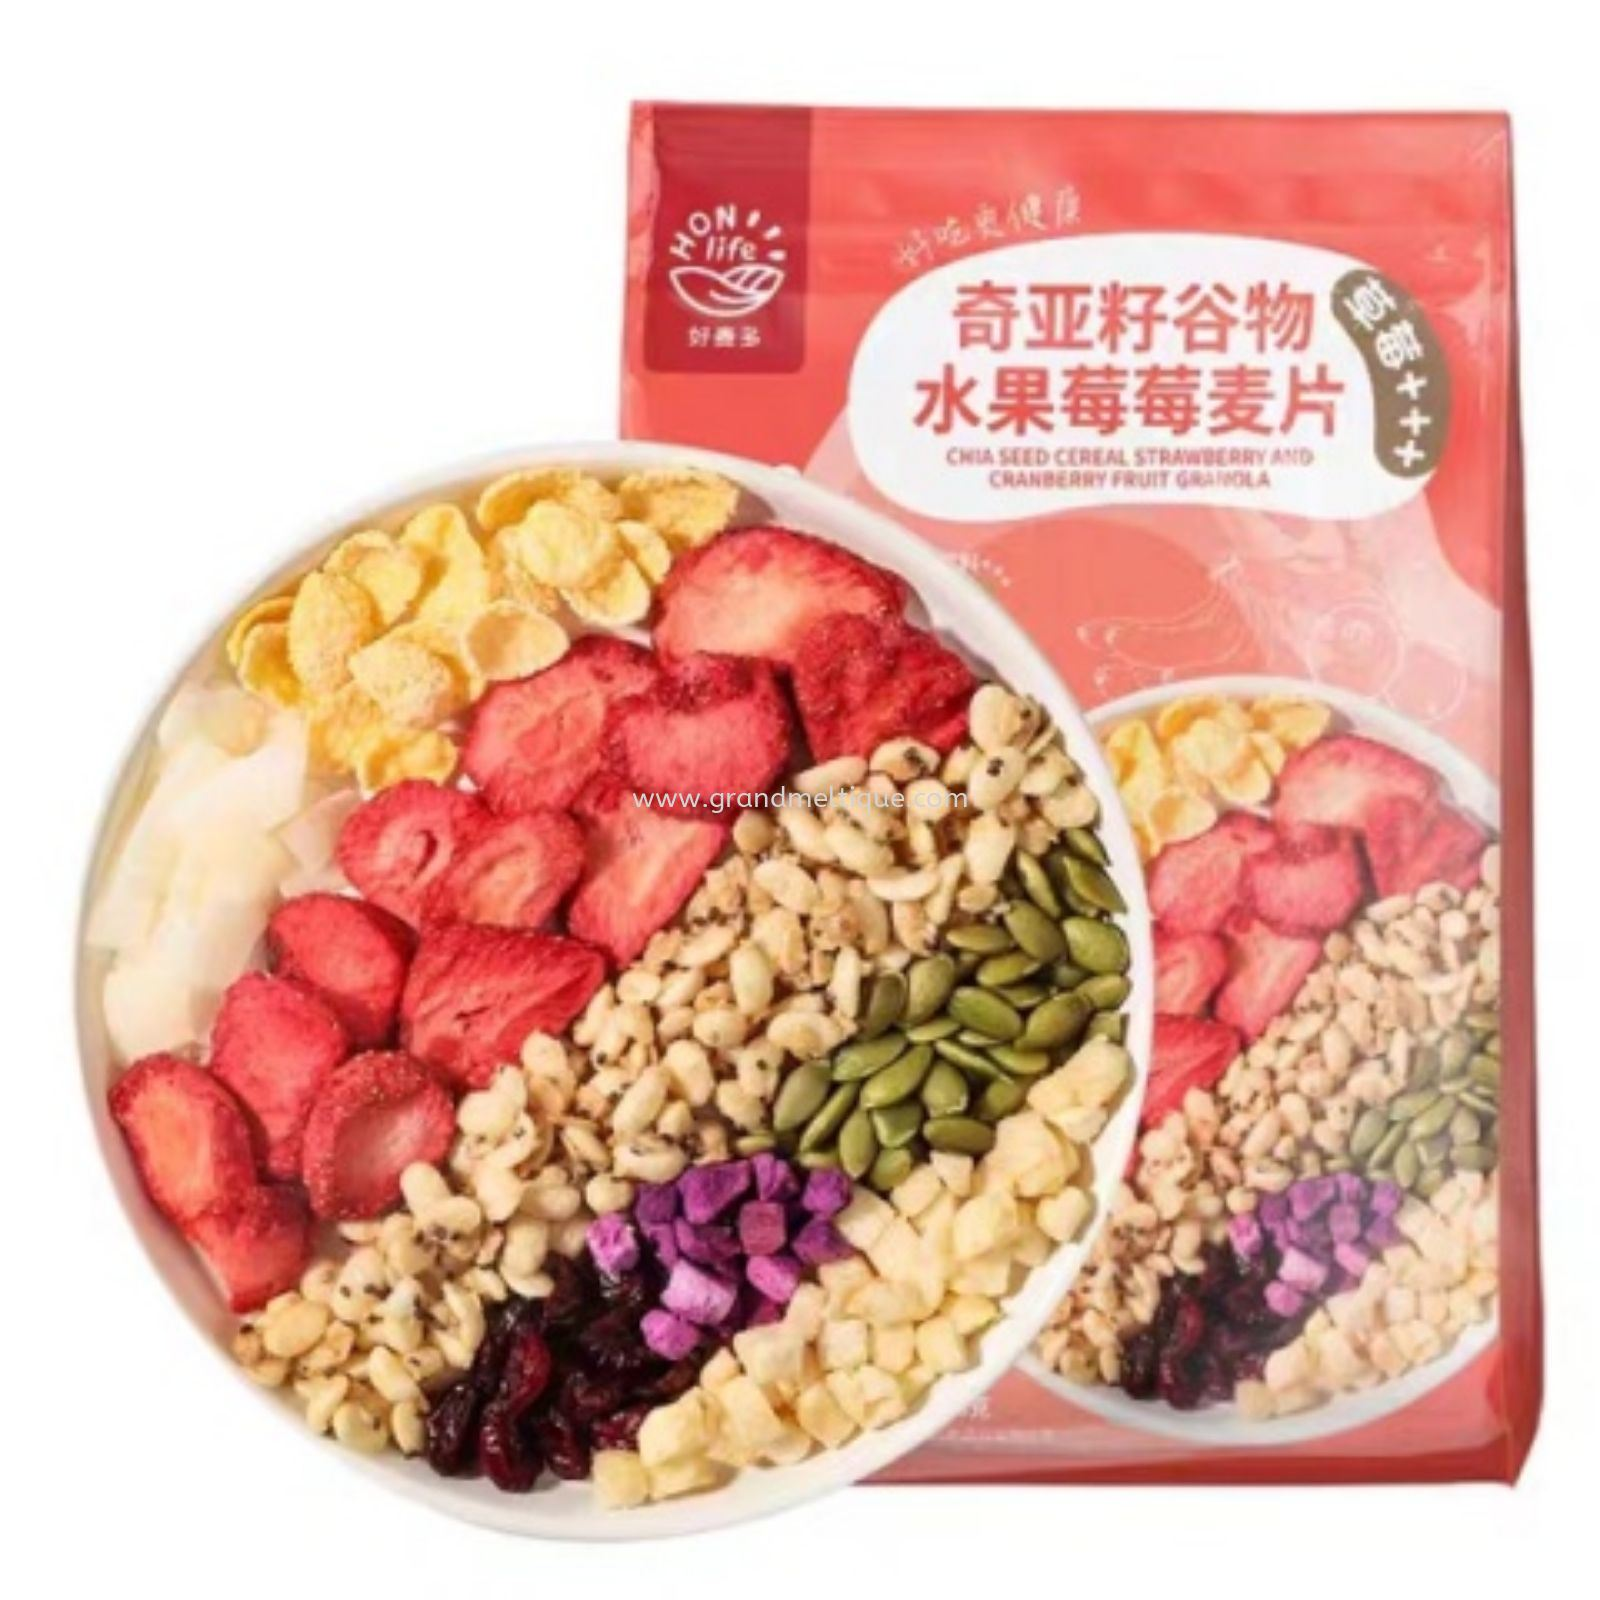 HONLIFE CHIA SEED CEREAL STRAWBERRY GRANOLA 酸奶莓莓麦片300G